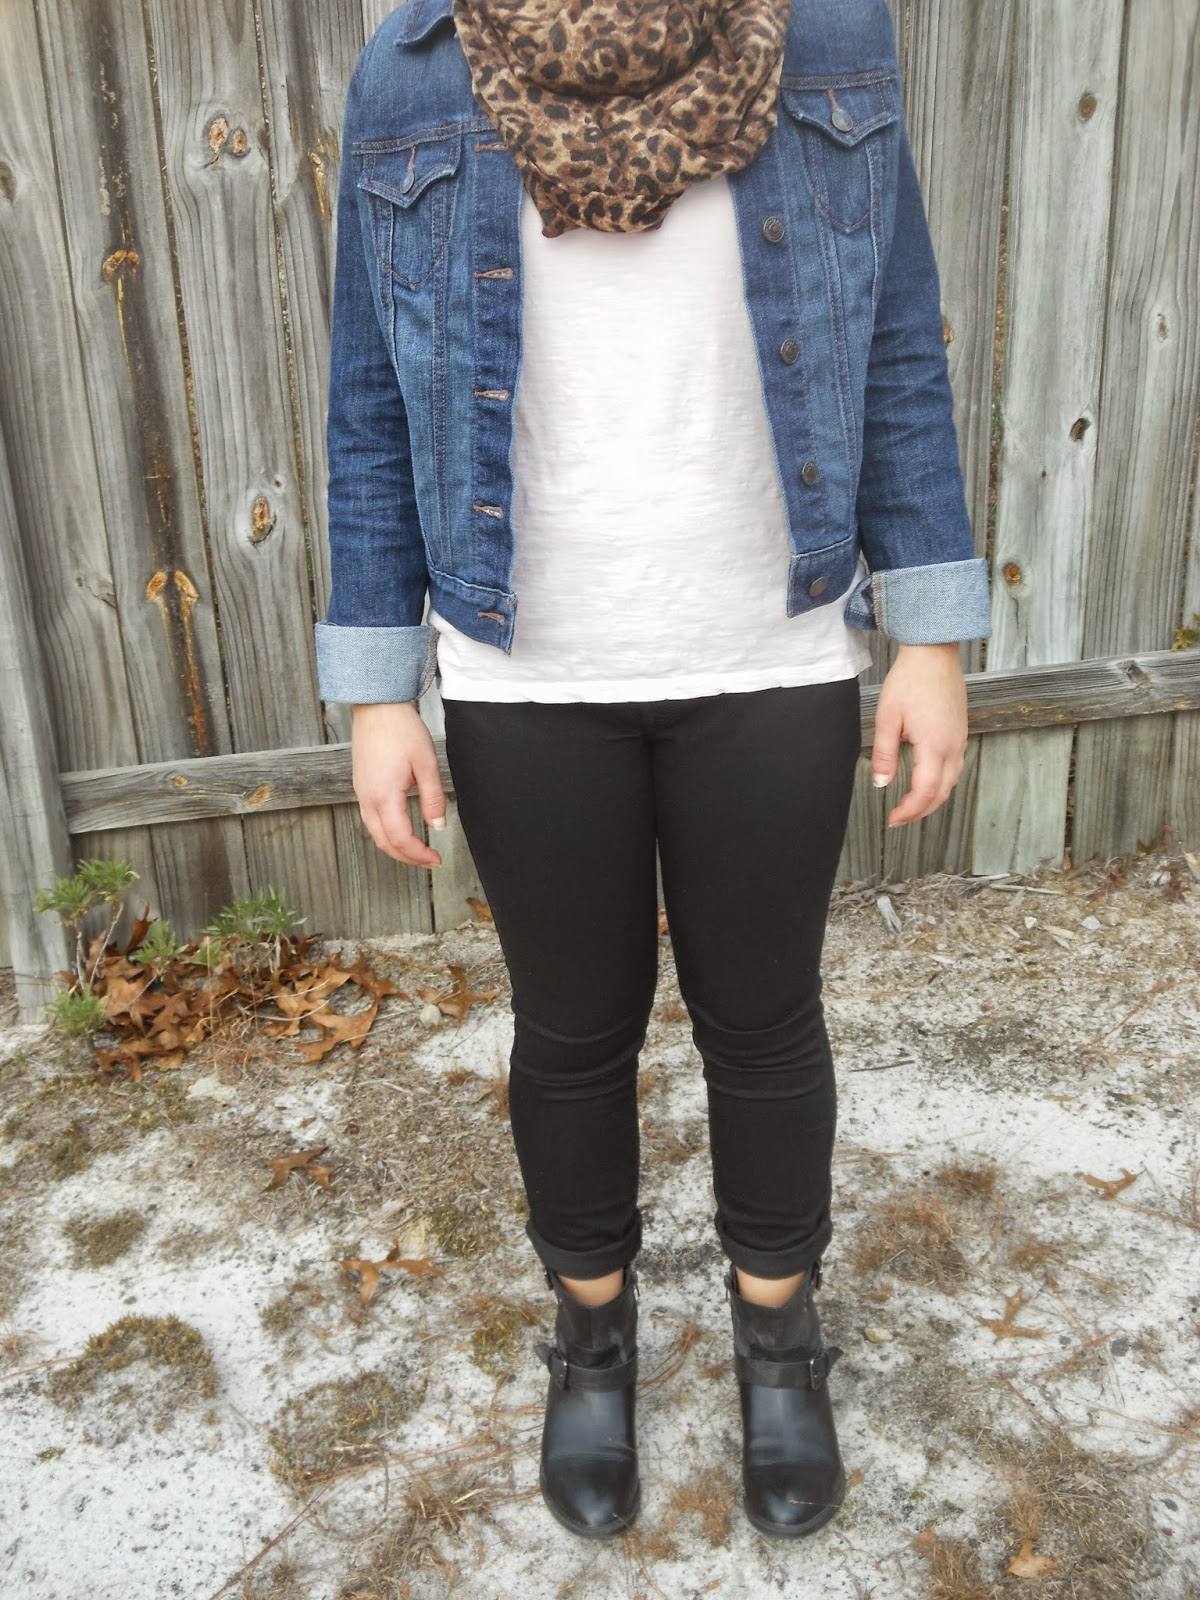 Good Juxtapositions. Pink lace top, black jeans, jean jacket, black ankle boots, leopard scarf.